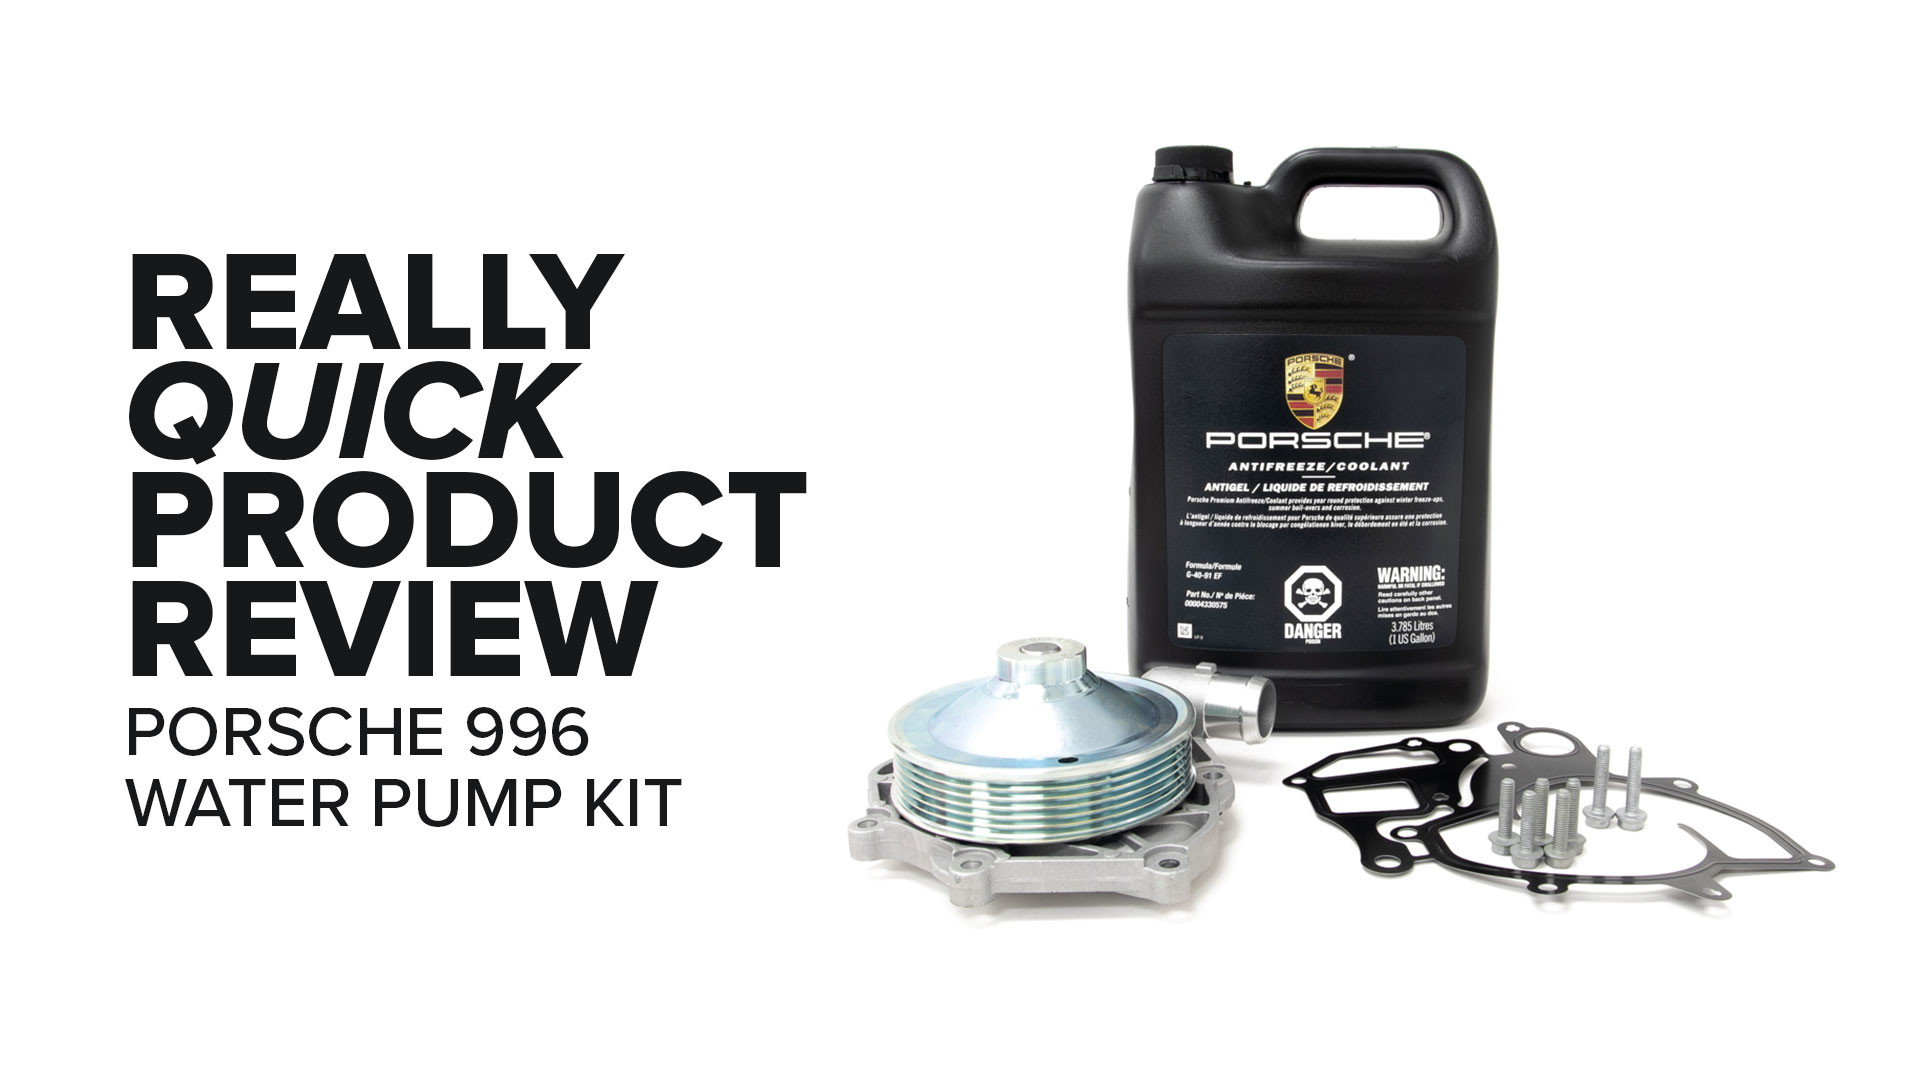 Porsche 996 911 Metal Impeller Water Pump Kit - Symptoms And Product Review